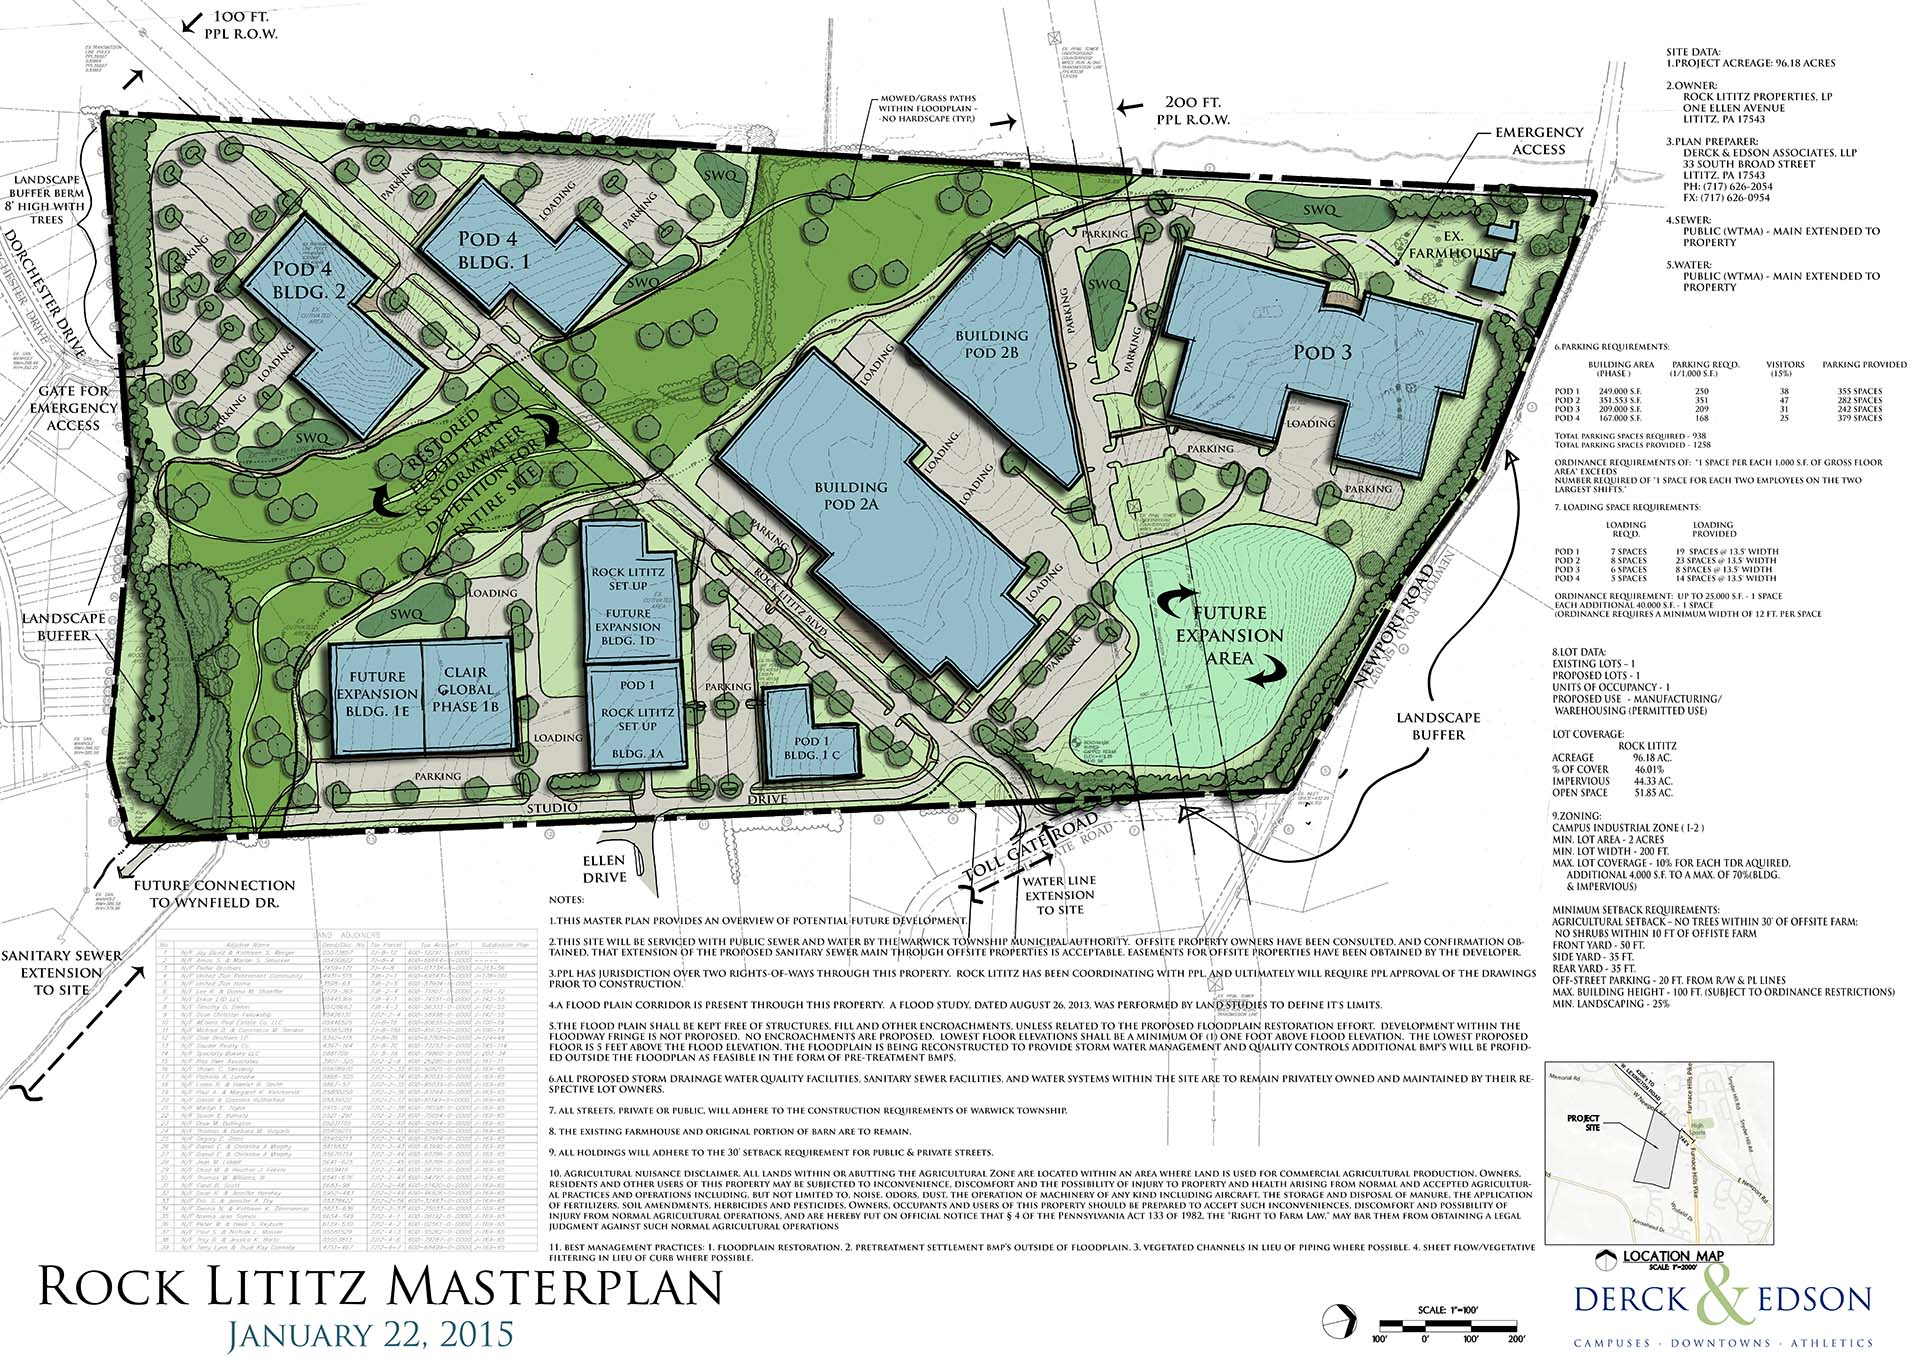 Rock Lititz Masterplan